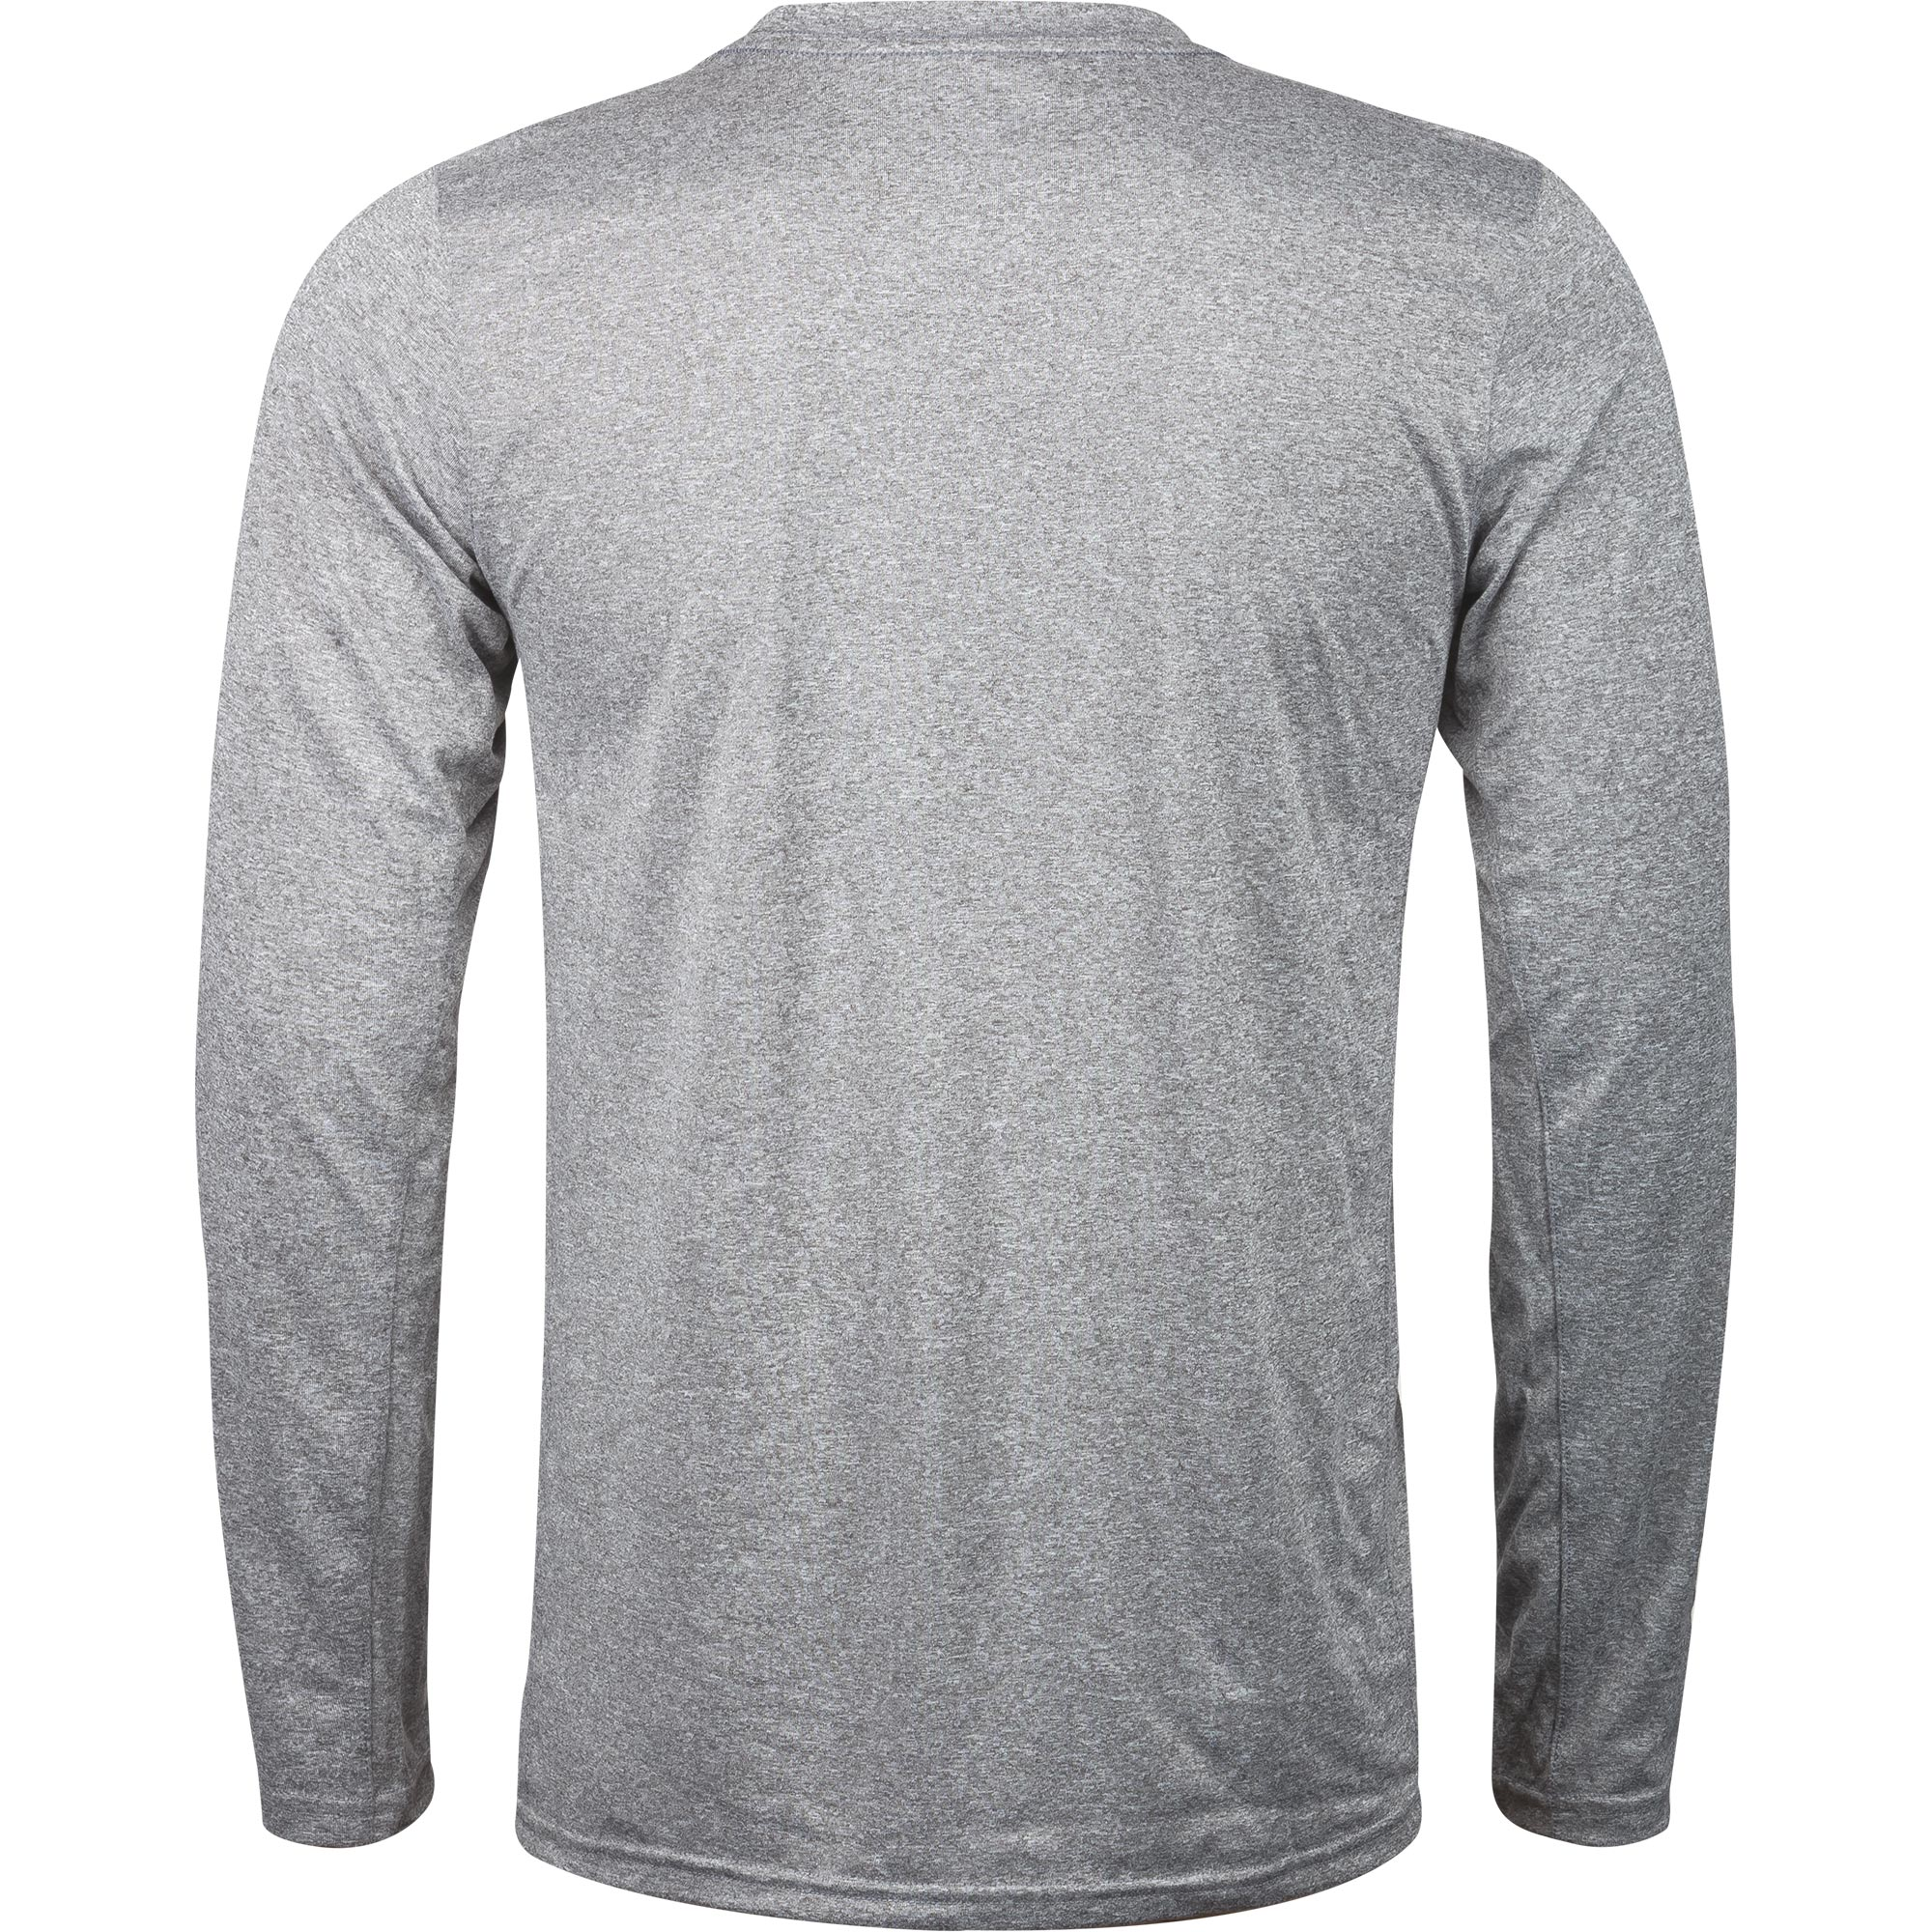 9f04815be6ac6 Nike USAWrestling Training Long Sleeve Tee Apparel | WrestlingMart ...